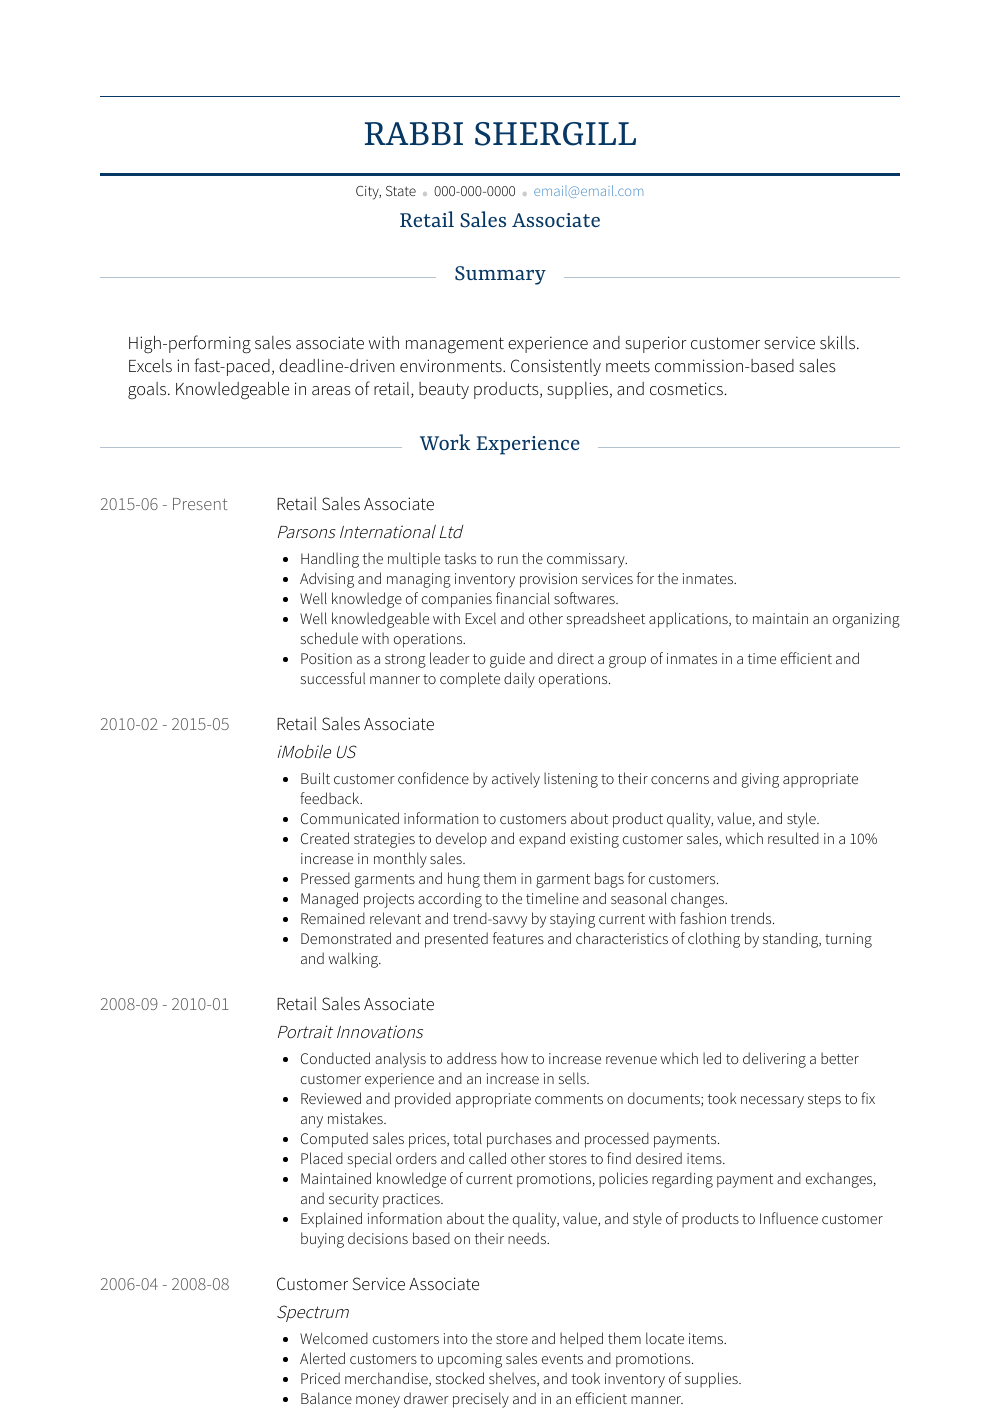 Retail Sales Associate Resume Sample and Template